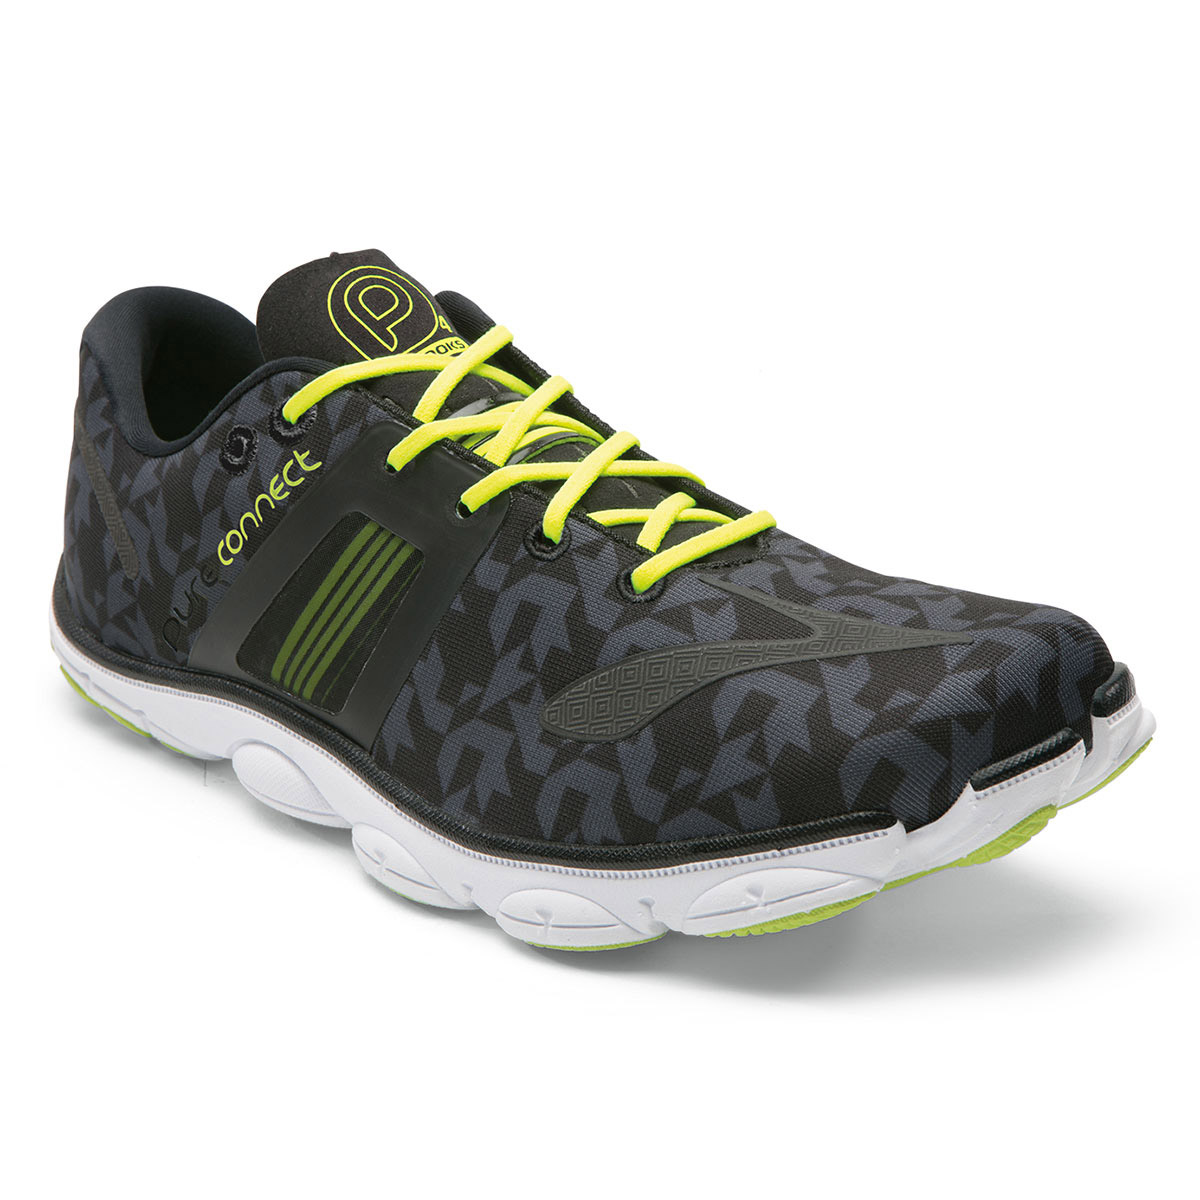 PureConnect 4 Minimalist Running Shoes